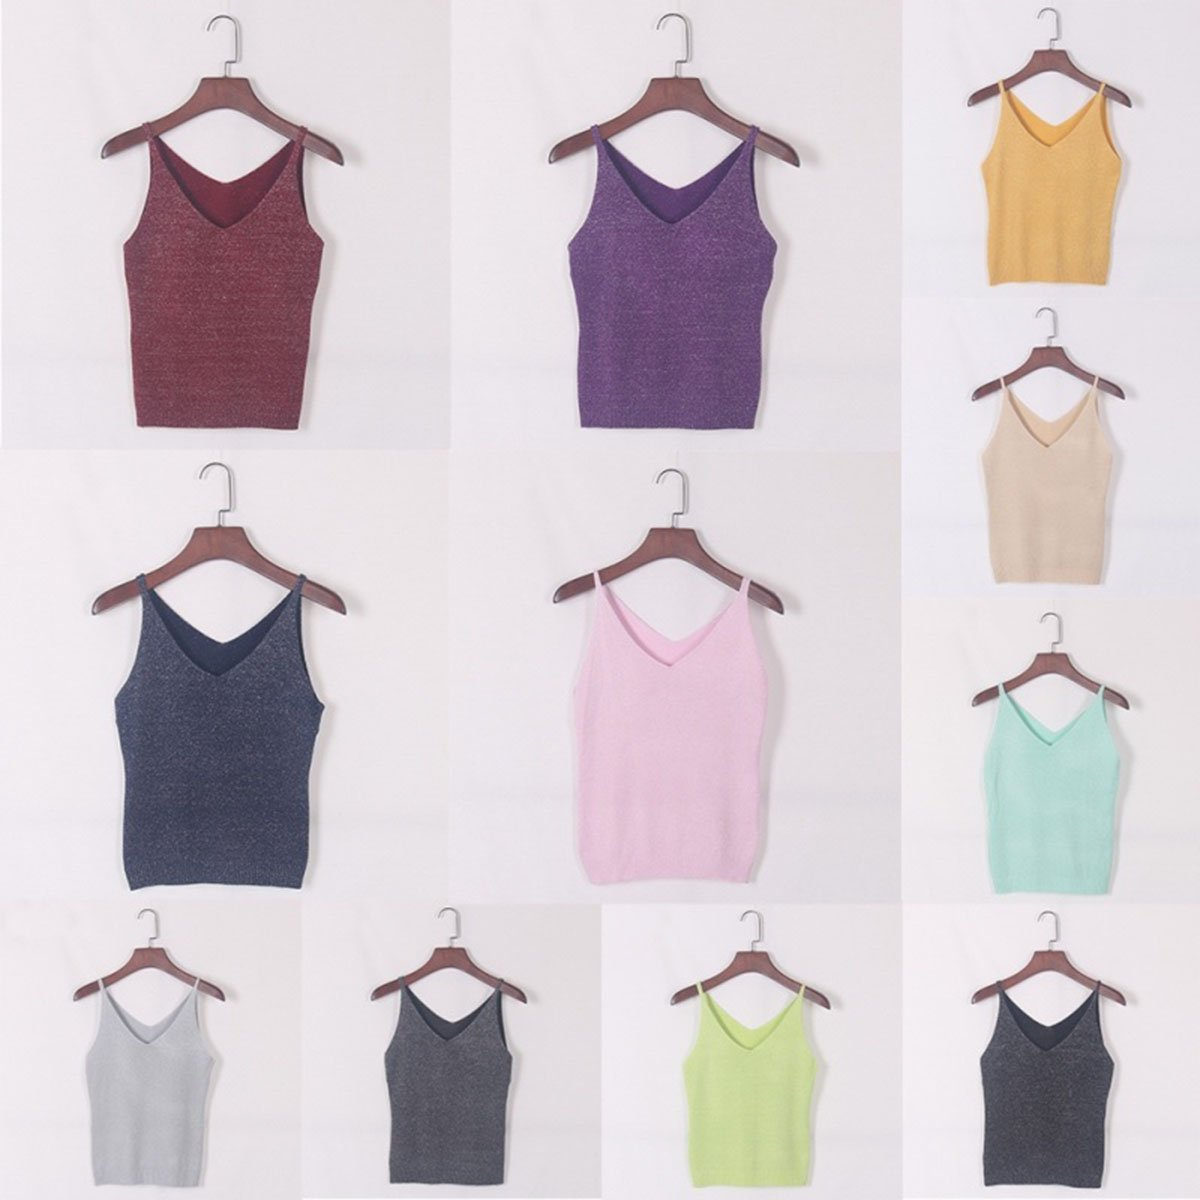 Newest Fashion Deep V-Neck Sleeveless Vest for Women